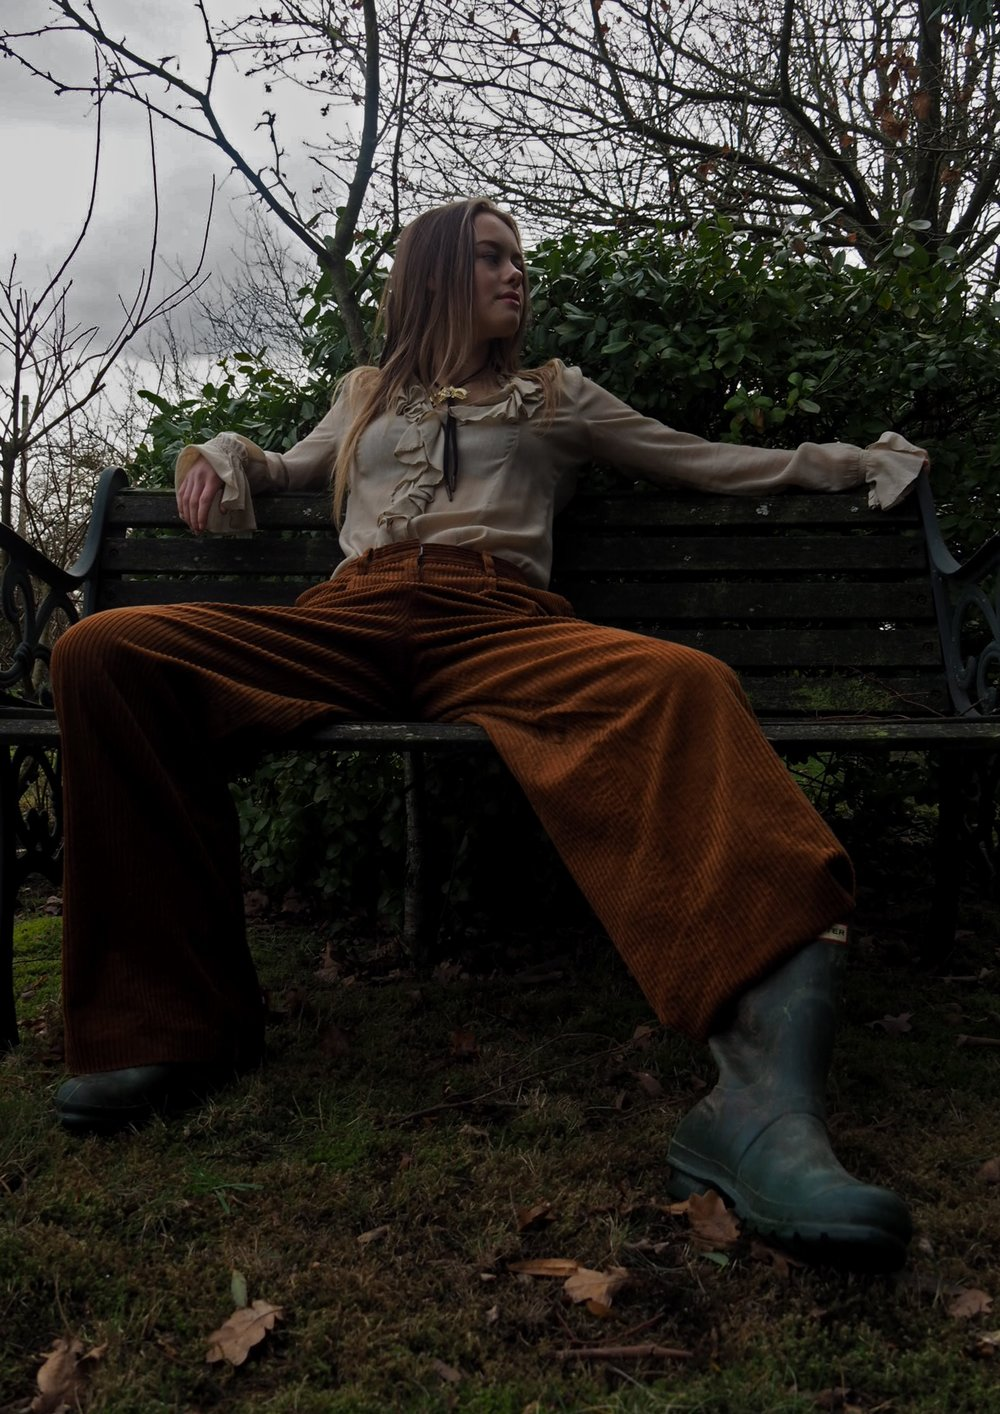 Emily wears vintage blouse, vintage necklace, trousers by H&M, boots by Hunter